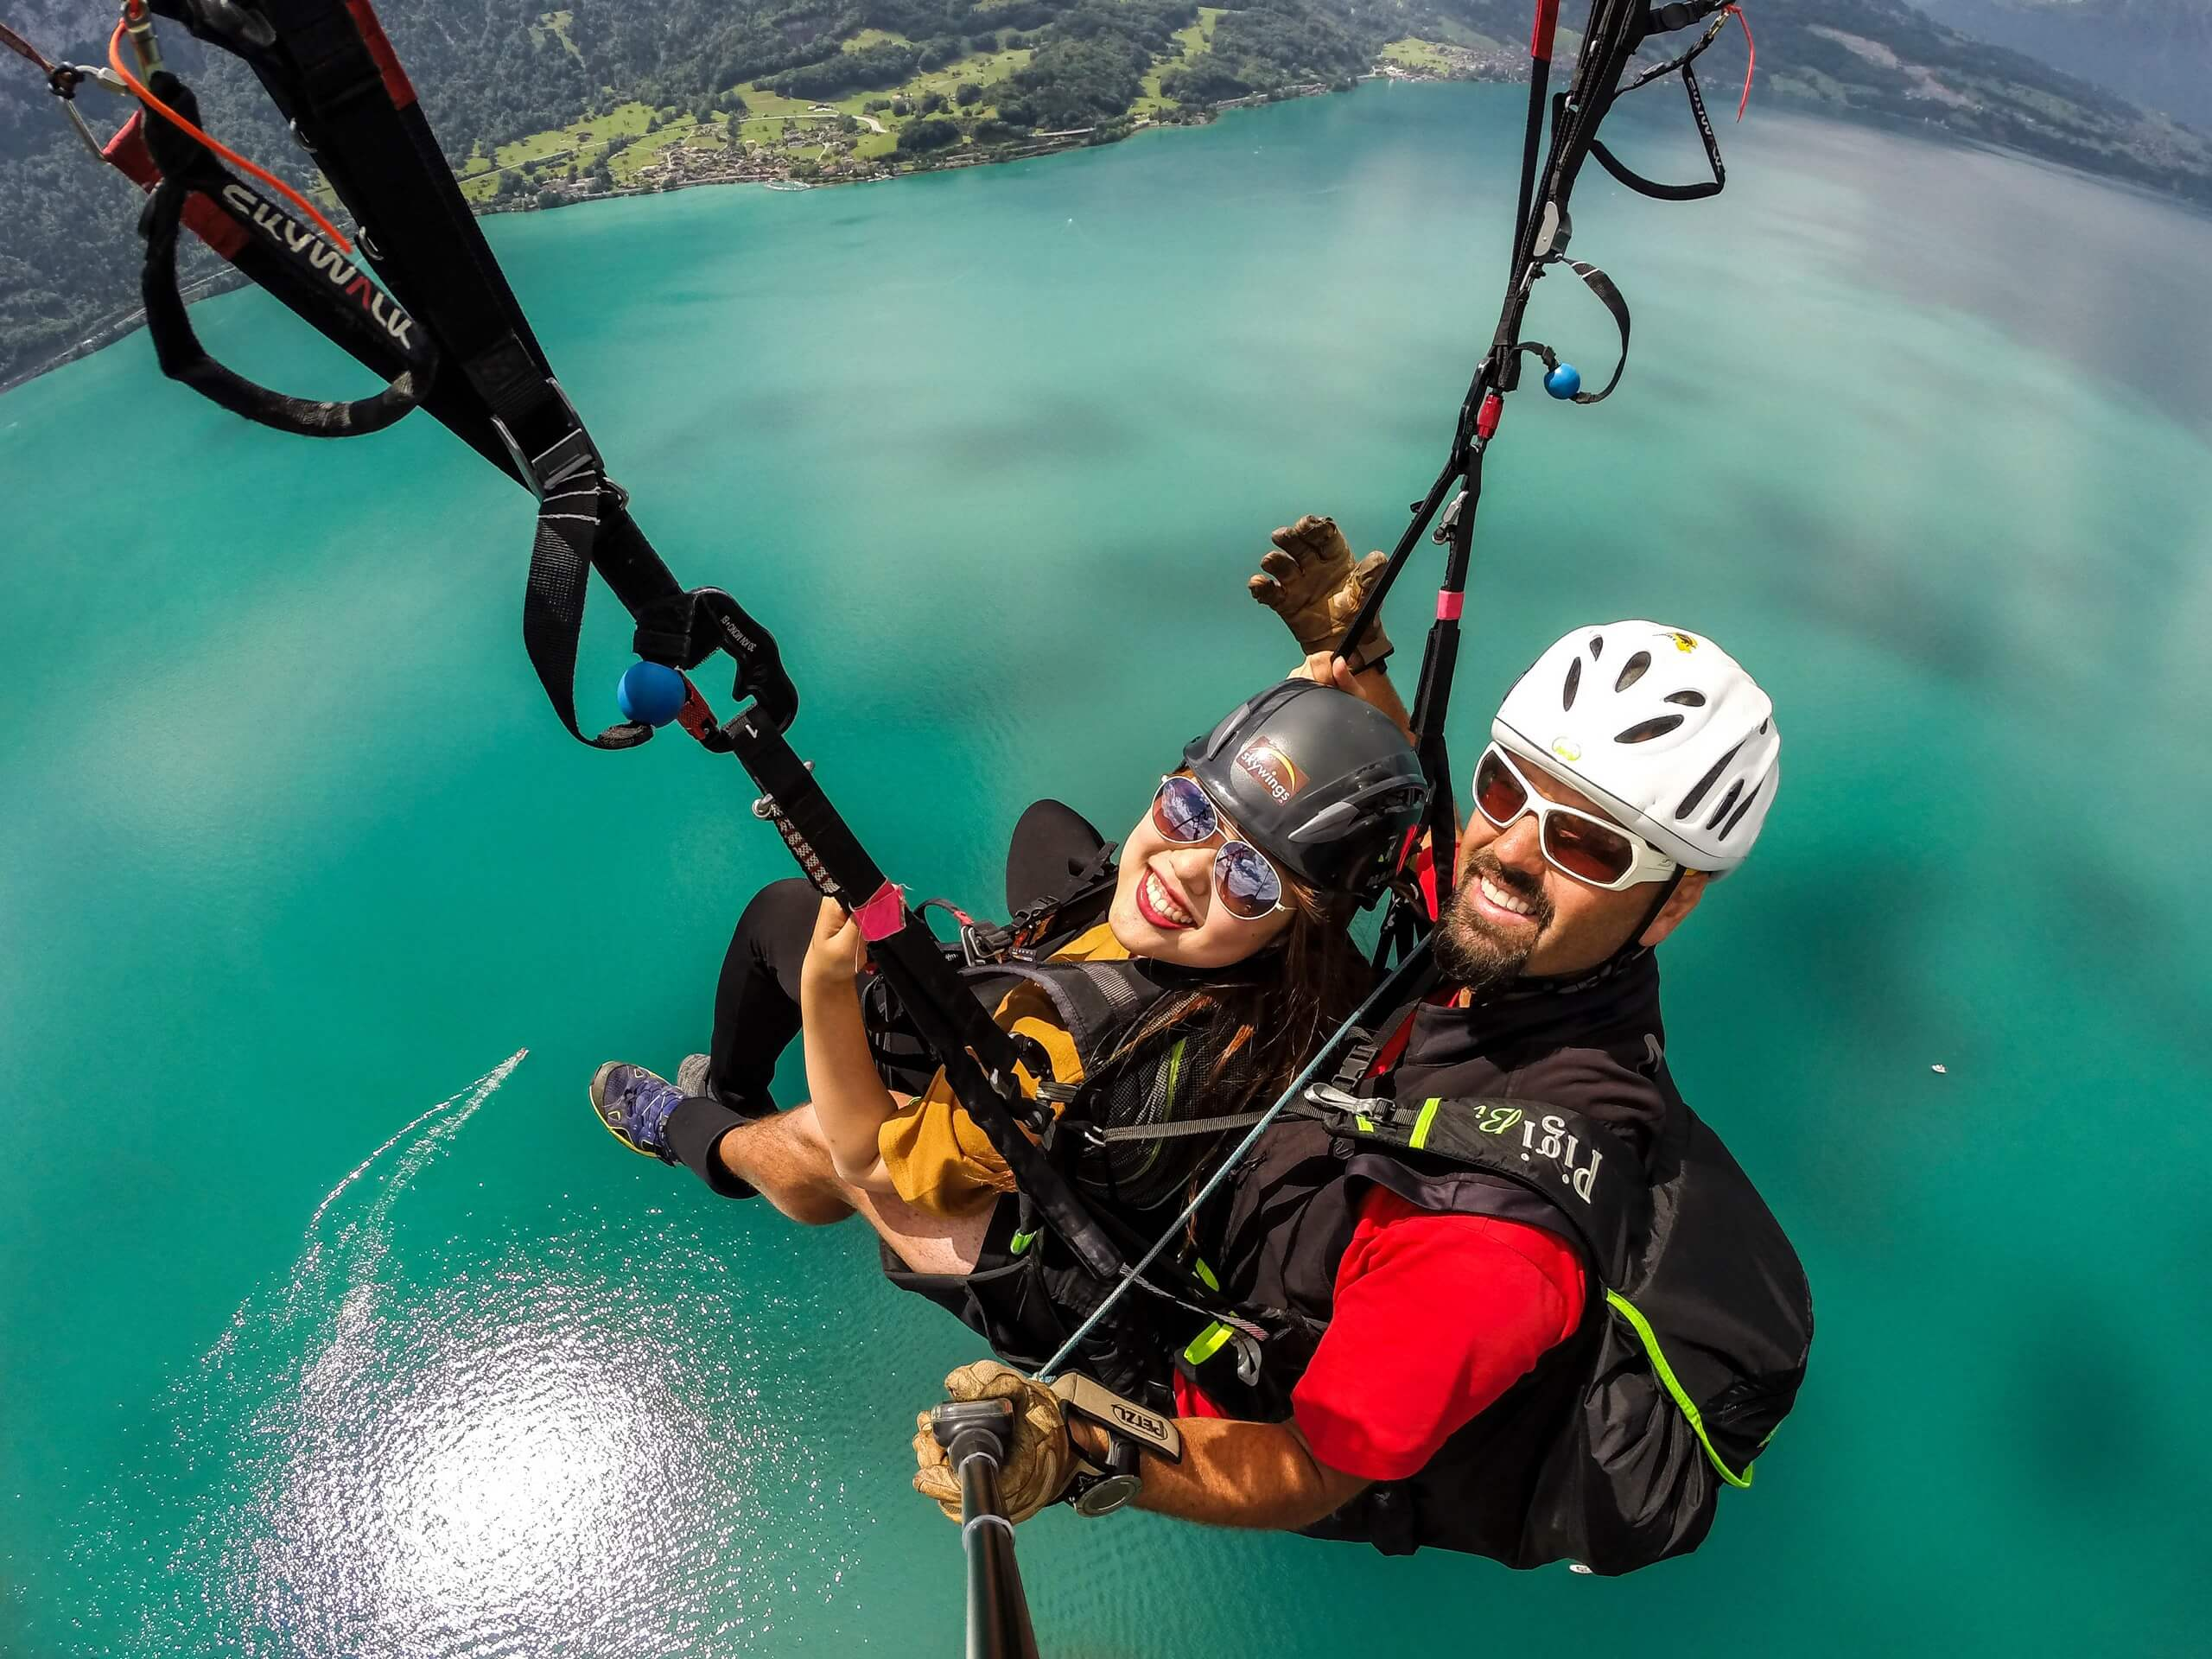 skywings-paragliding-interlaken-sommer-brienzersee-asien